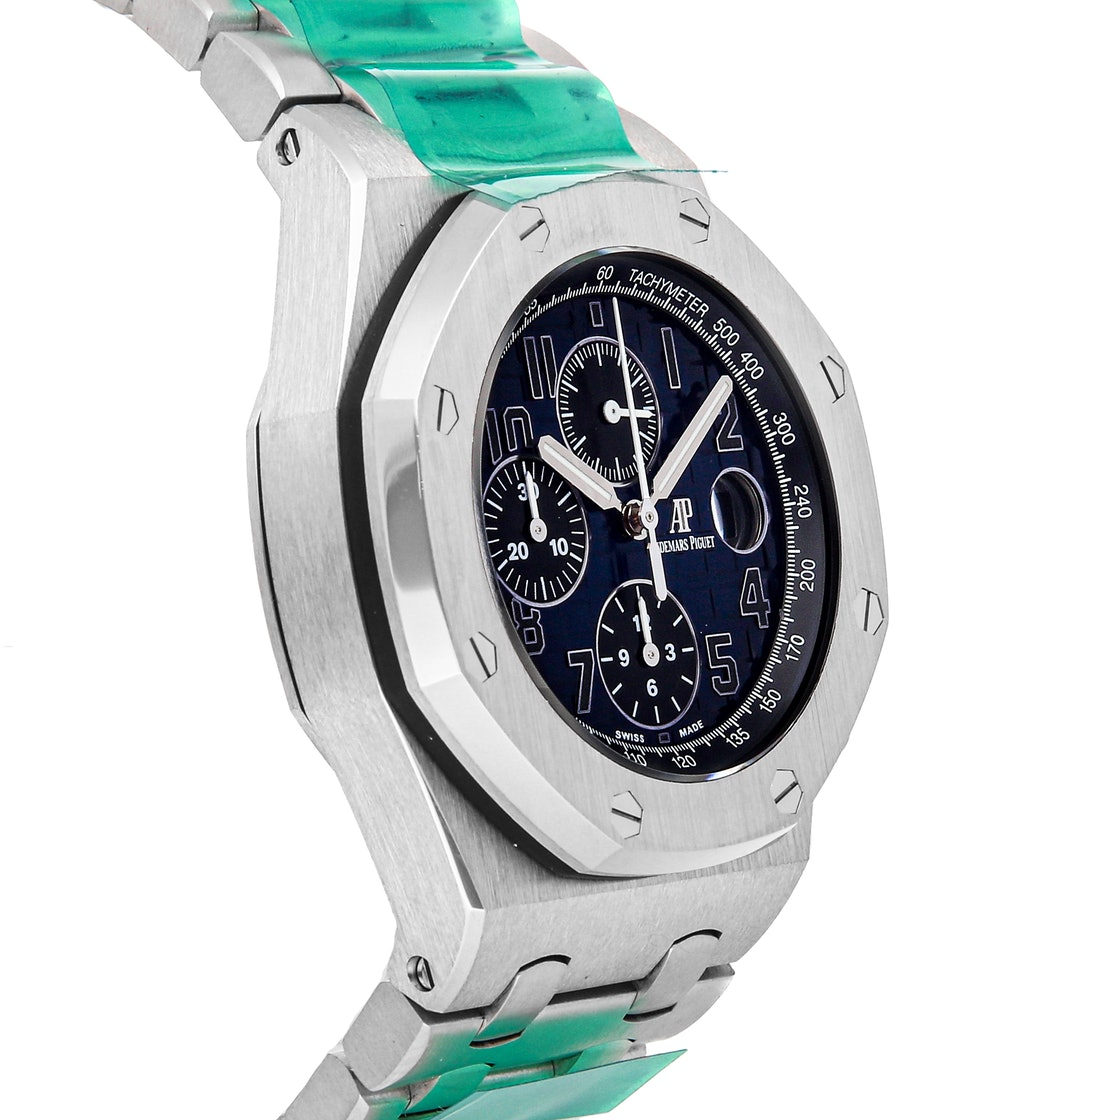 Audemars Piguet Royal Oak Offshore Chronograph Limited Edition 26470PT.OO.1000PT.02